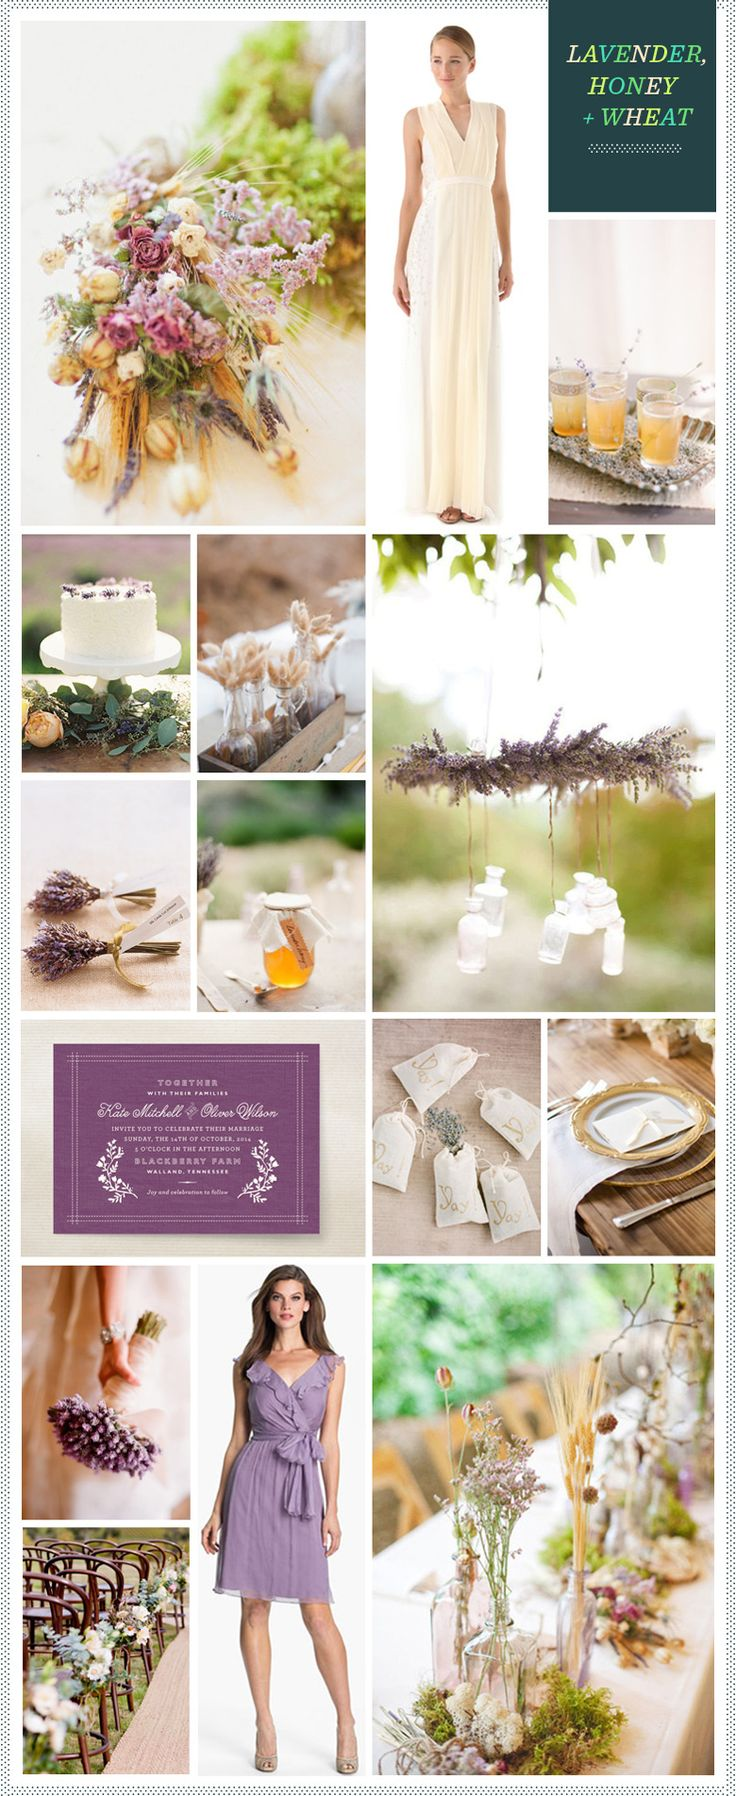 REVEL: Lavender, Wheat + Honey Wedding Inspiration